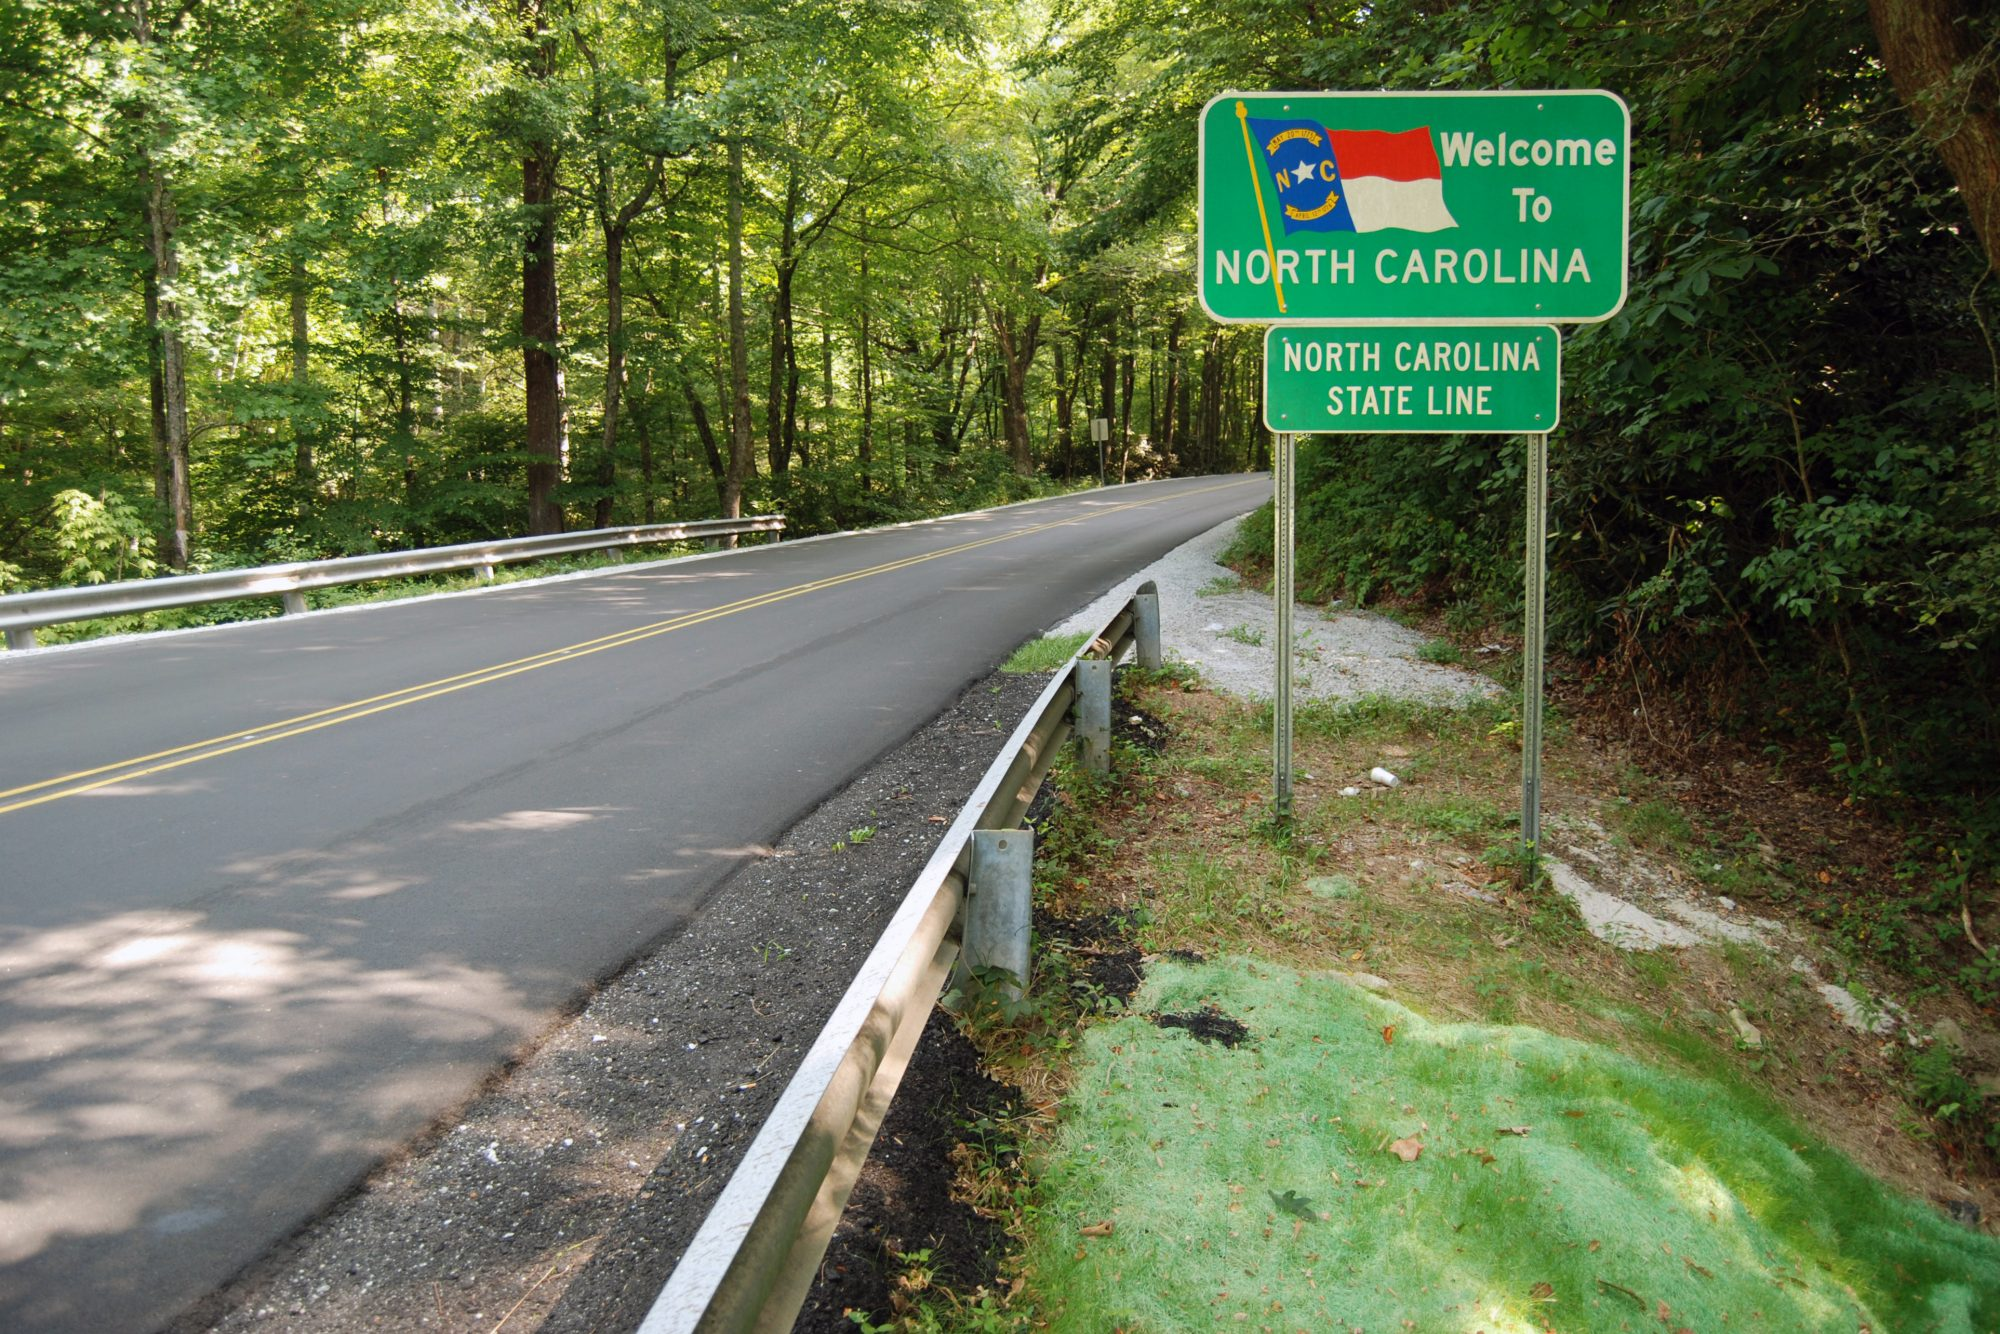 Welcome to North Carolina Highway Sign